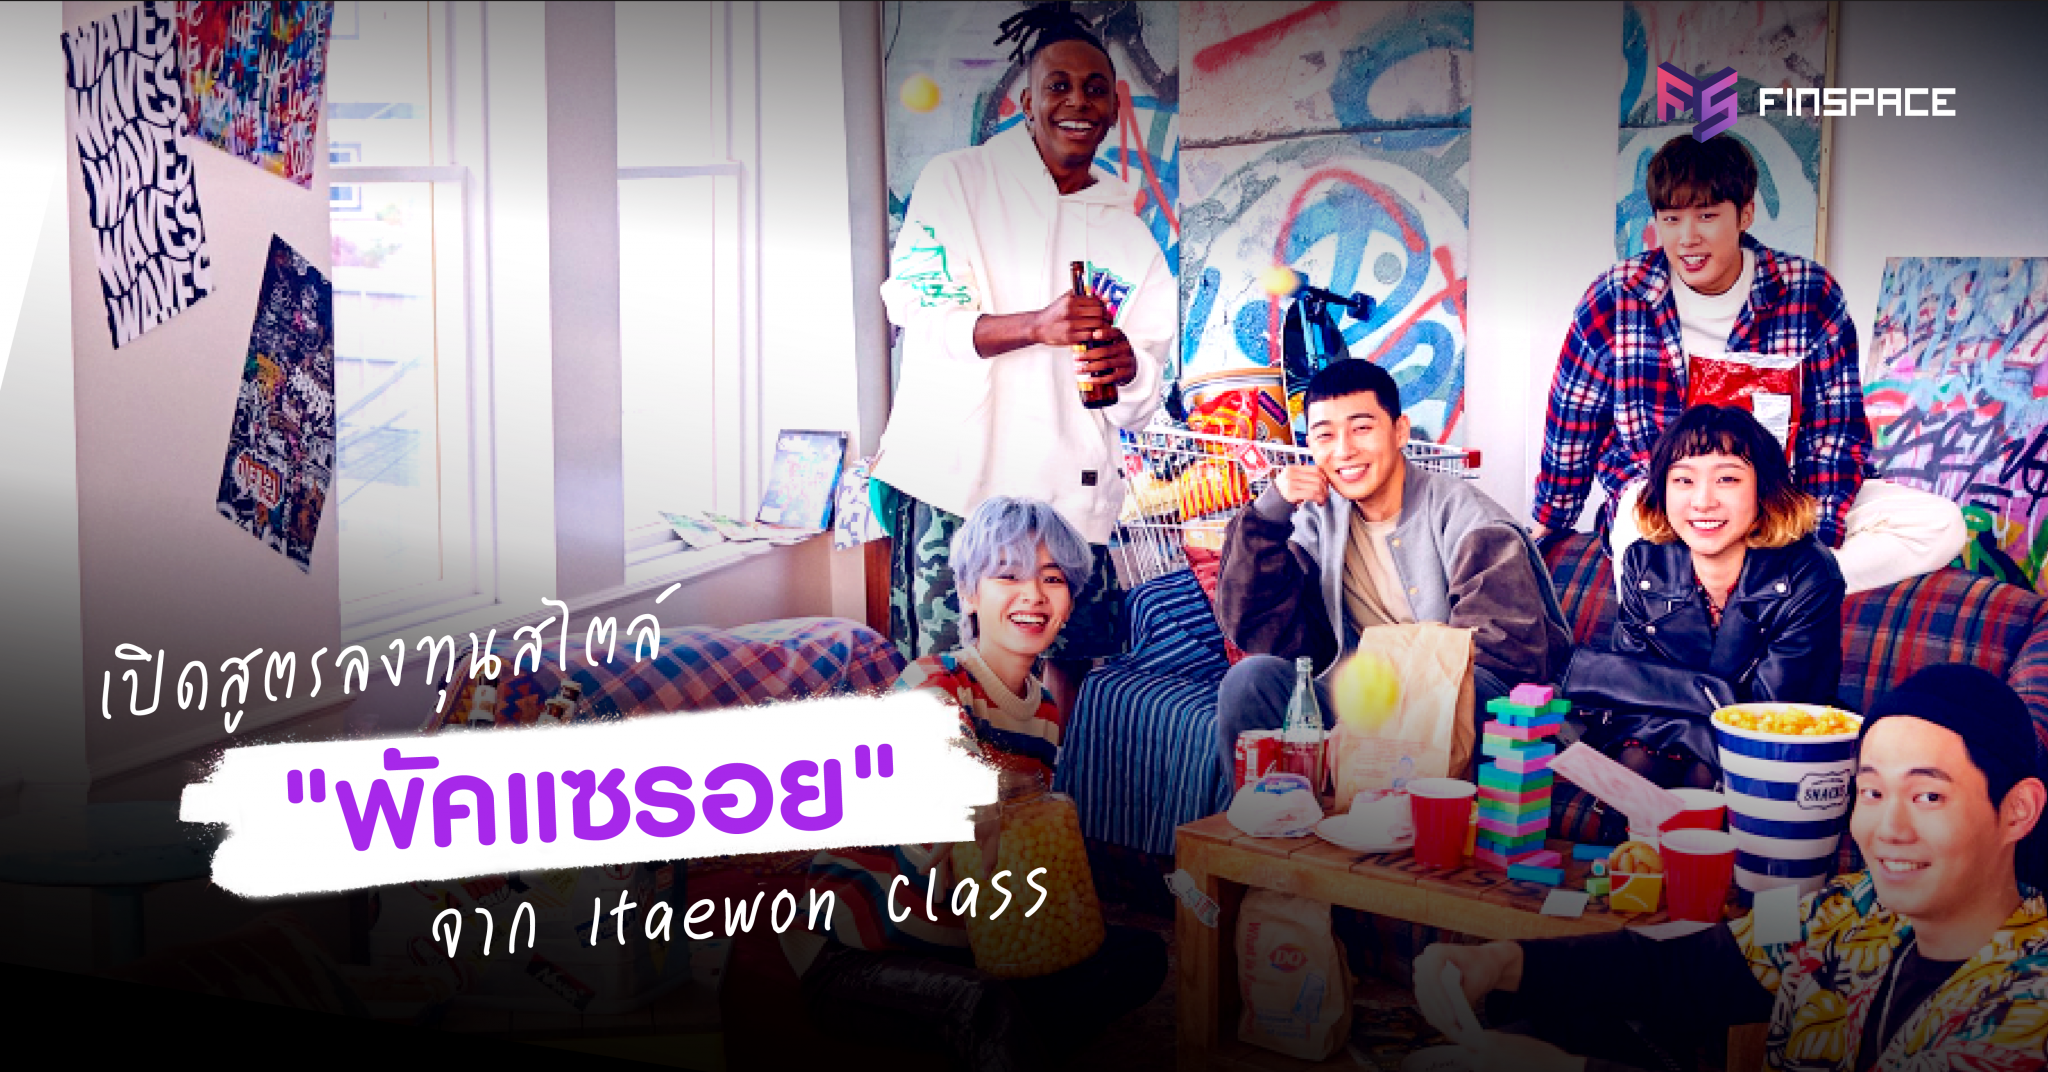 FinSpace-Itaewon Class Feature Image